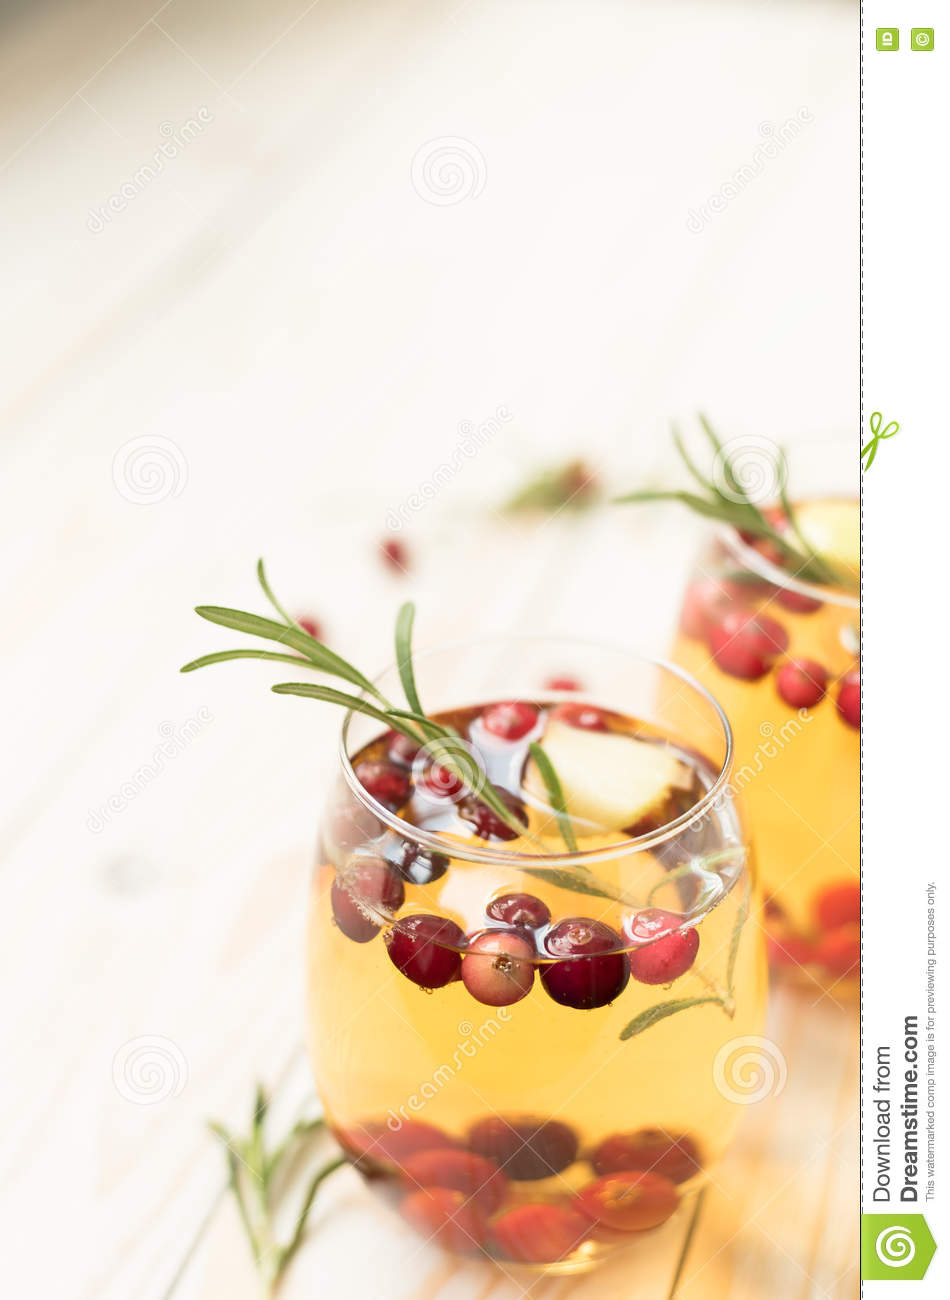 download christmas sangria with apple sider stock photo image of glass juicy 78678178